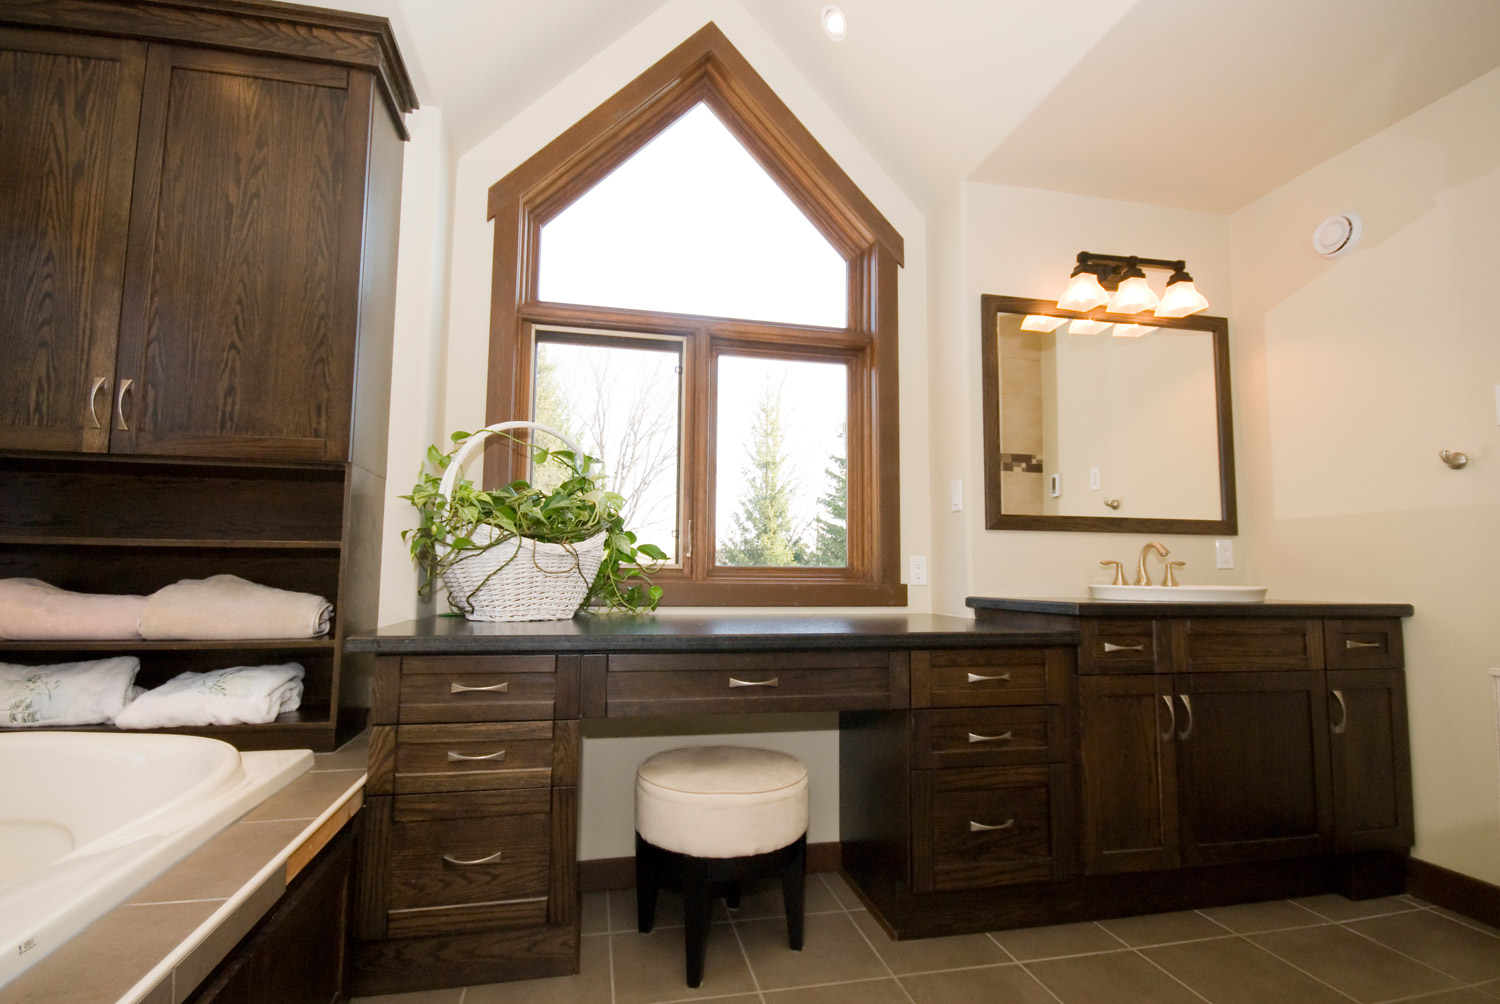 Gorgeous large ensuite bathroom design and renovation in barrie ontario with dark cabinets and makeup desk